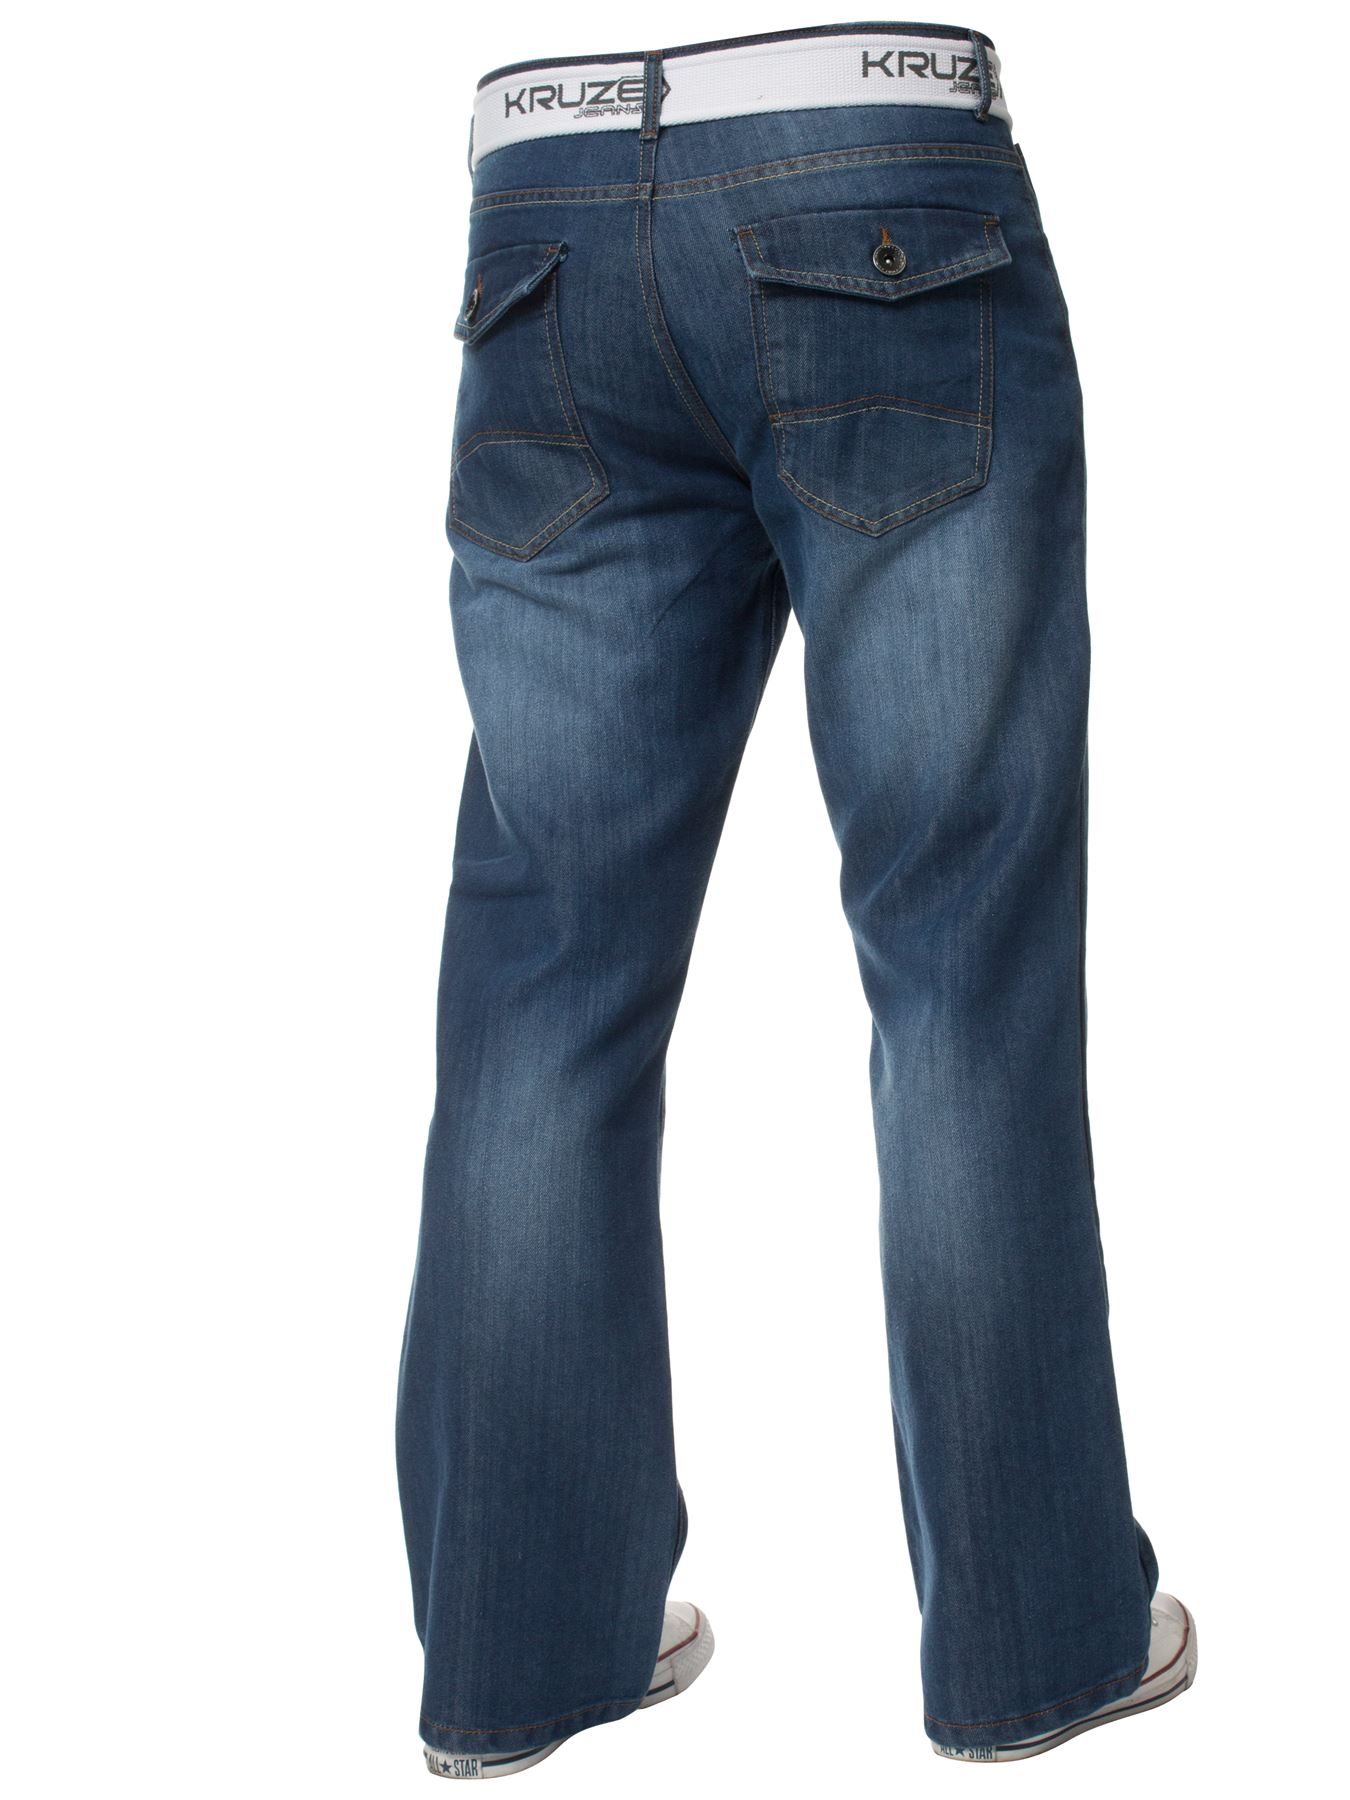 Kruze-Mens-Bootcut-Jeans-Flared-Wide-Leg-Denim-Pants-Big-Tall-King-All-Waists thumbnail 5